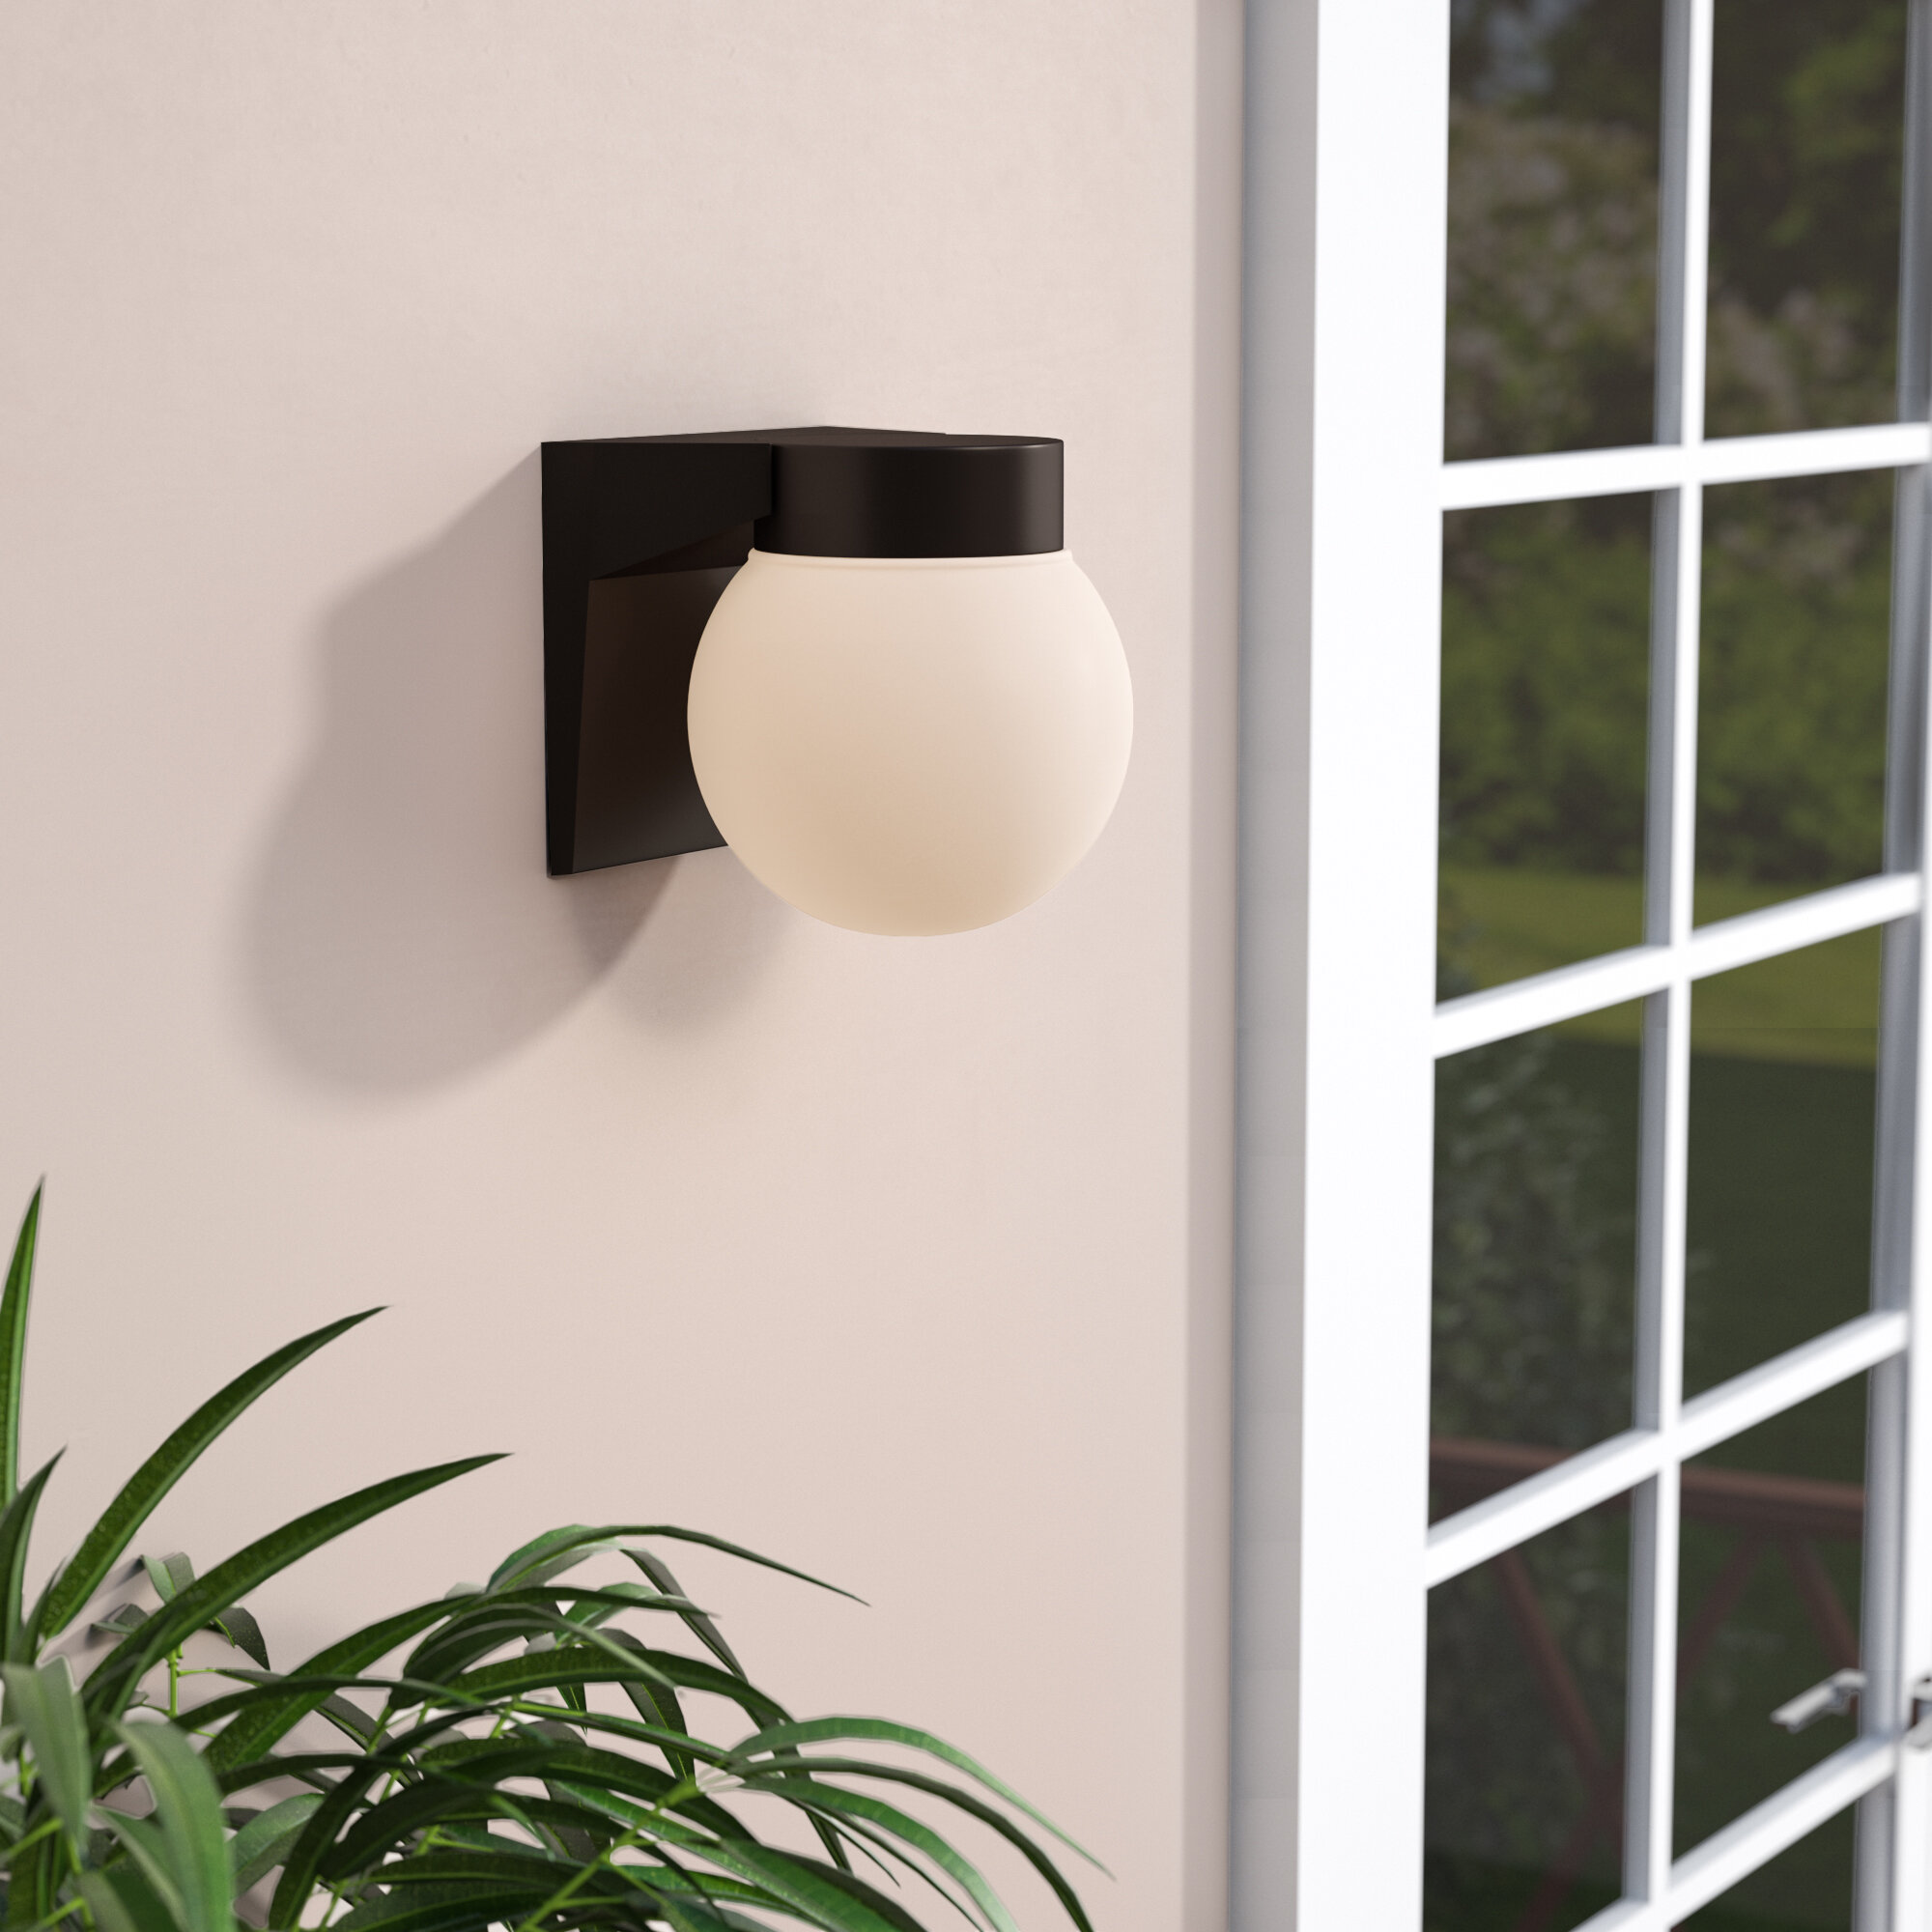 Sol 72 Outdoor Imboden Outdoor Sconce Reviews Wayfair